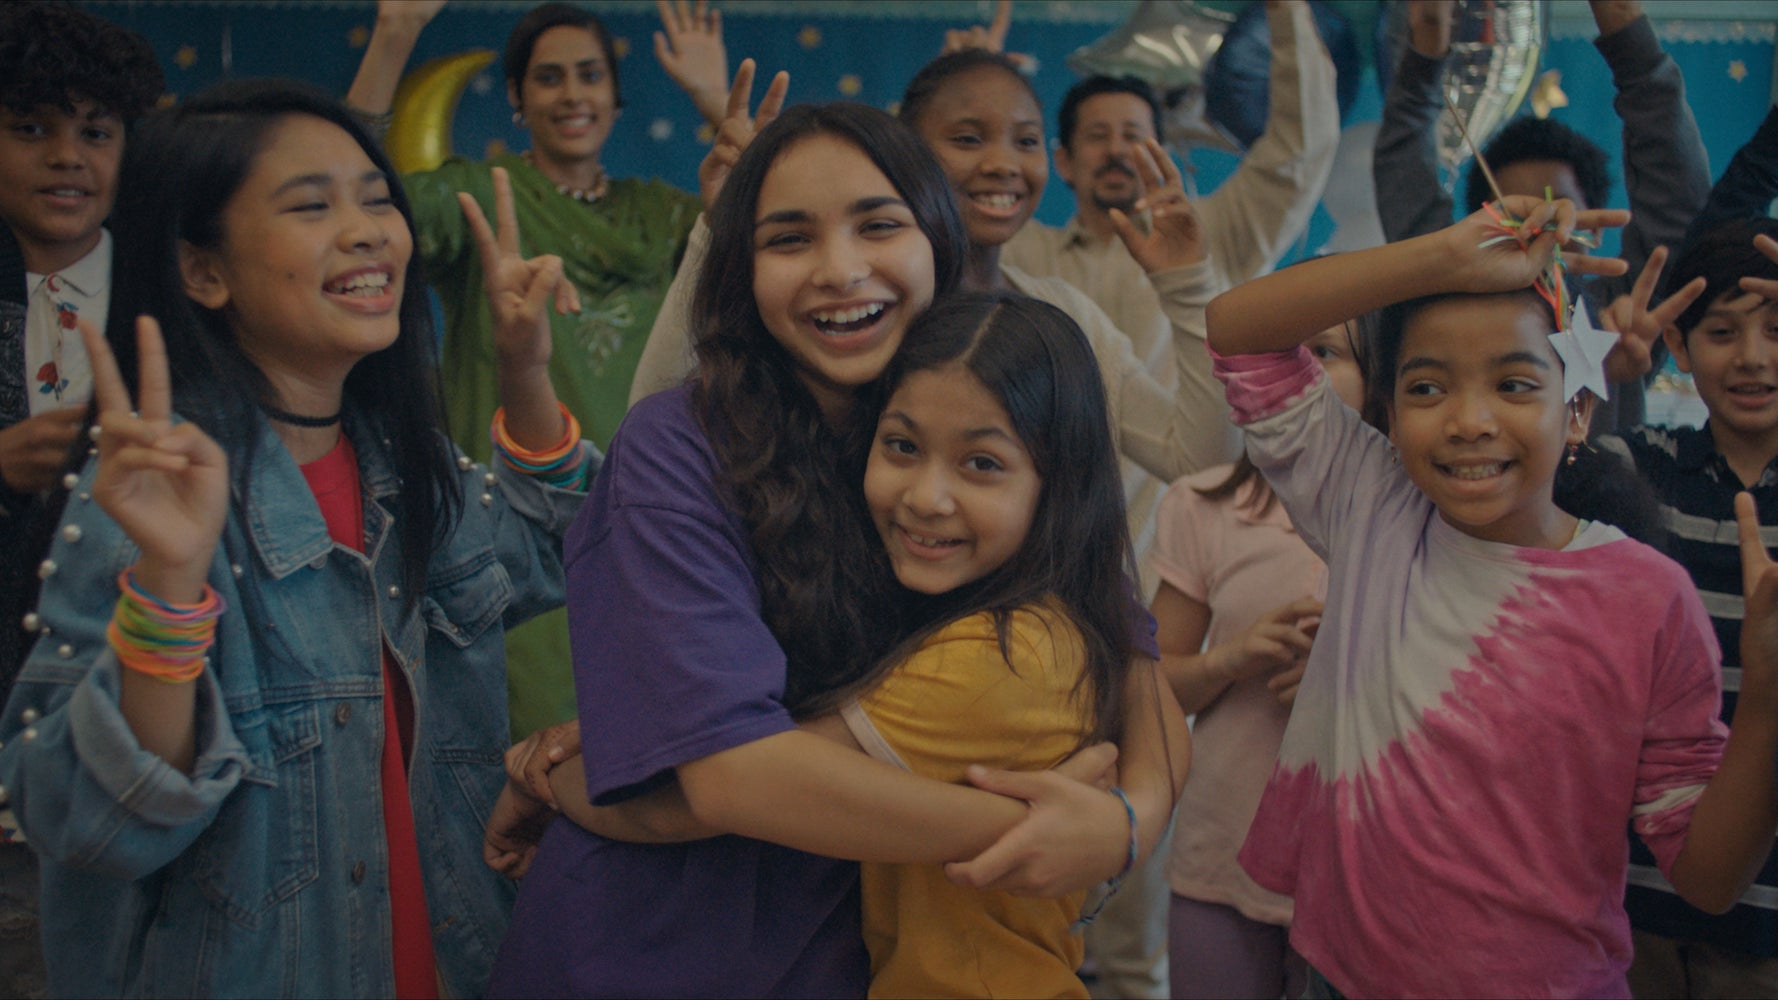 """(Center, l-r): Jenna Qureshi as Zainab and Shanessa Khawaja as Ameena in Disney's """"LAUNCHPAD"""" Season One short, """"AMERICAN EID,"""" Written and Directed by Aqsa Altaf. Photo courtesy of Disney. © 2021 Disney Enterprises, Inc. All Rights Reserved."""